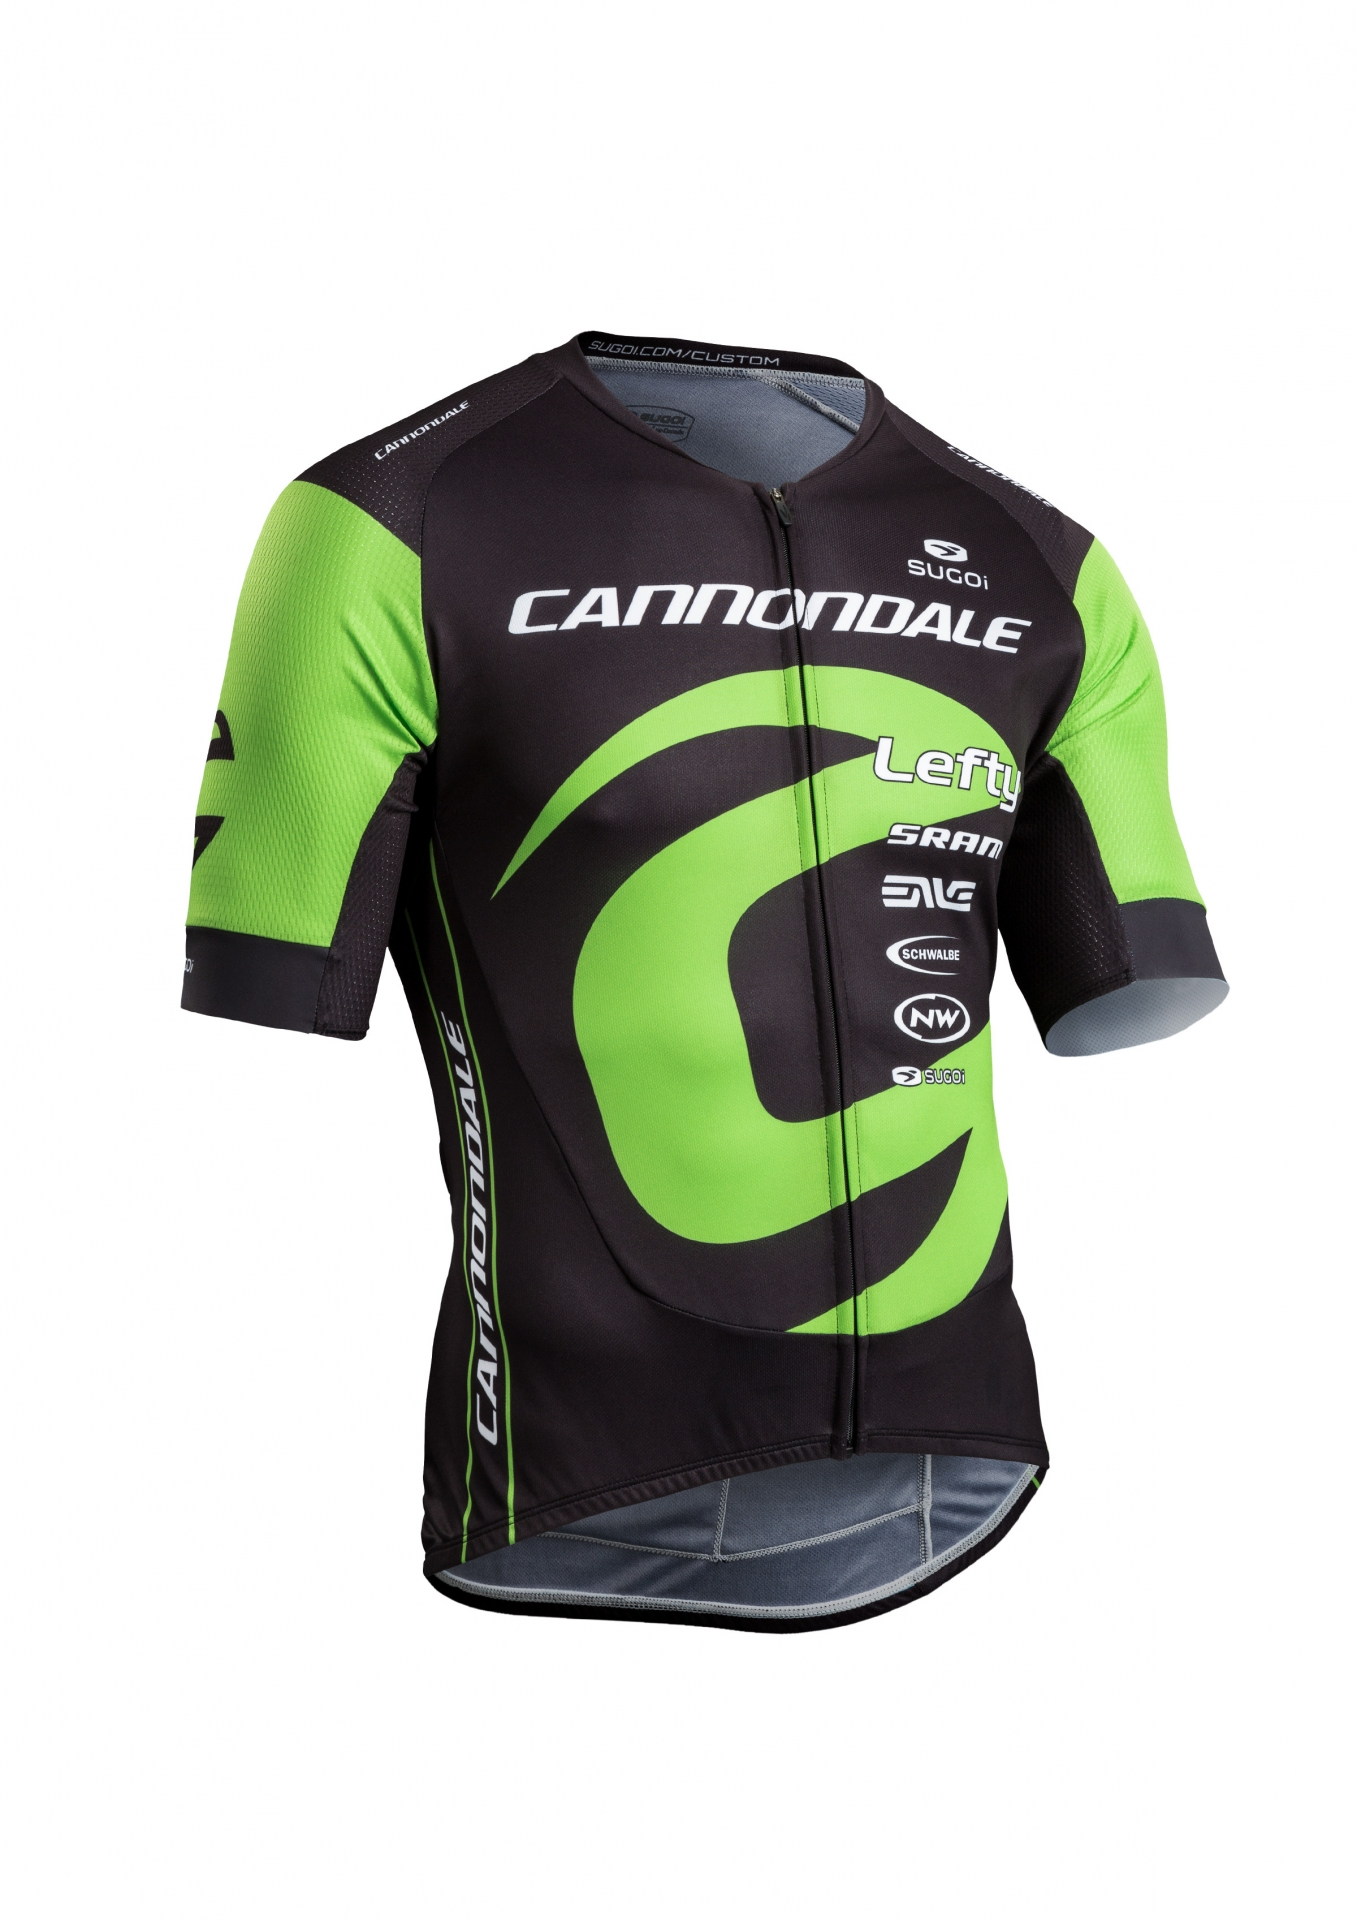 Maillot Cannondale Training Jersey Factory Racing CFR - L